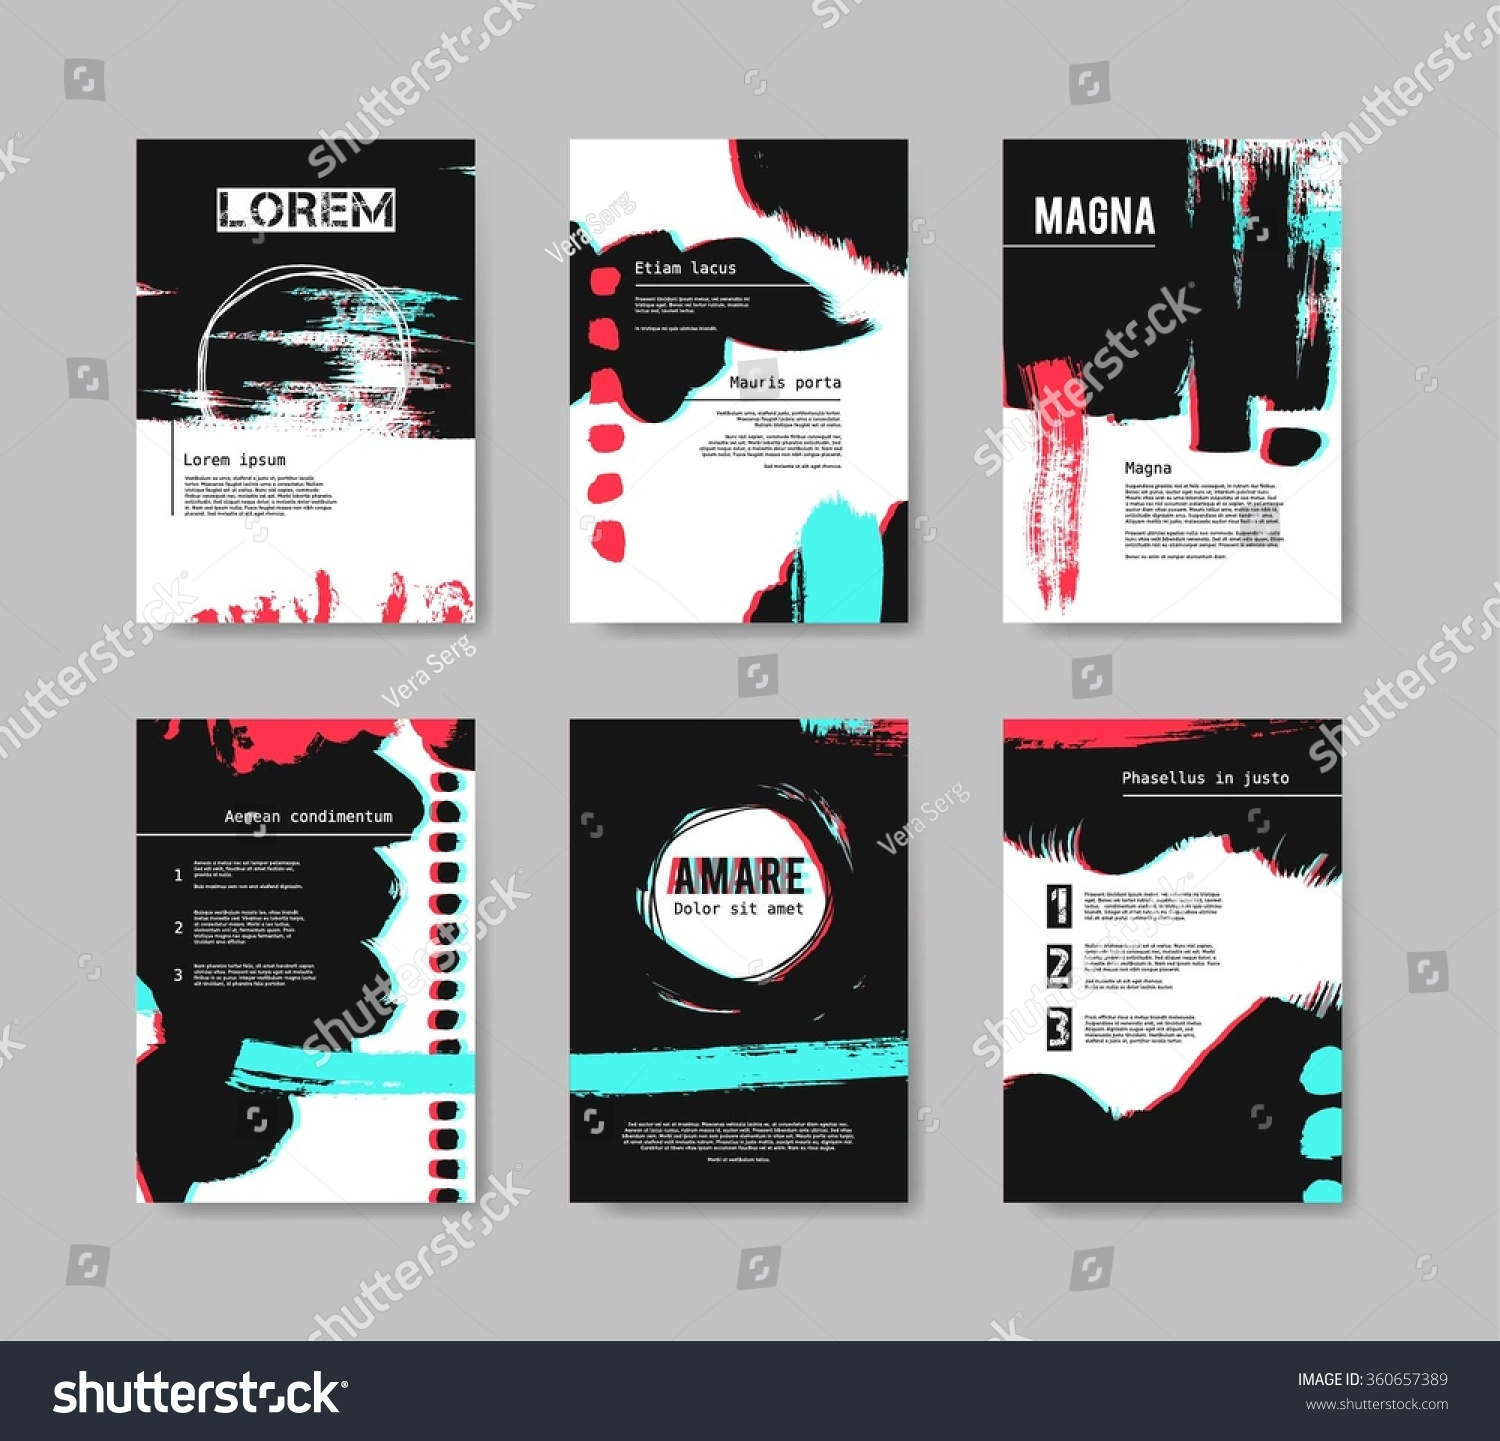 Set Of Templates For Brochure Abstract Hand Drawn Vector Underground Flyers Design